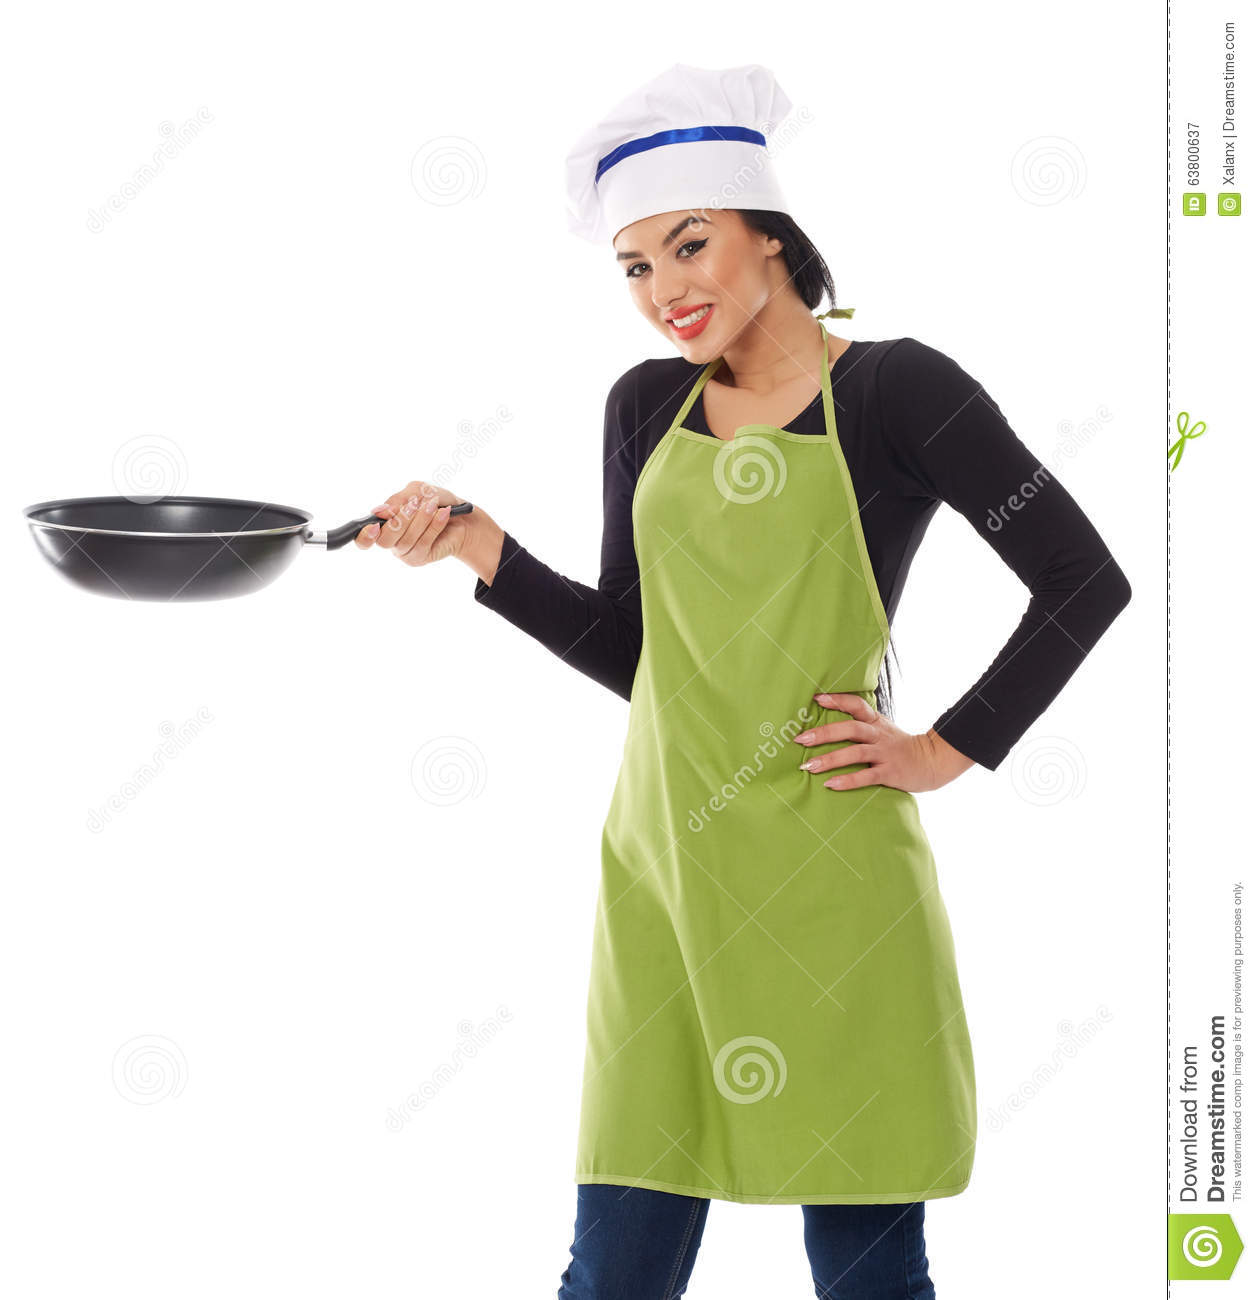 Hispanic Lady Cook With Frying Pan Stock Image - Image of kitchen ...